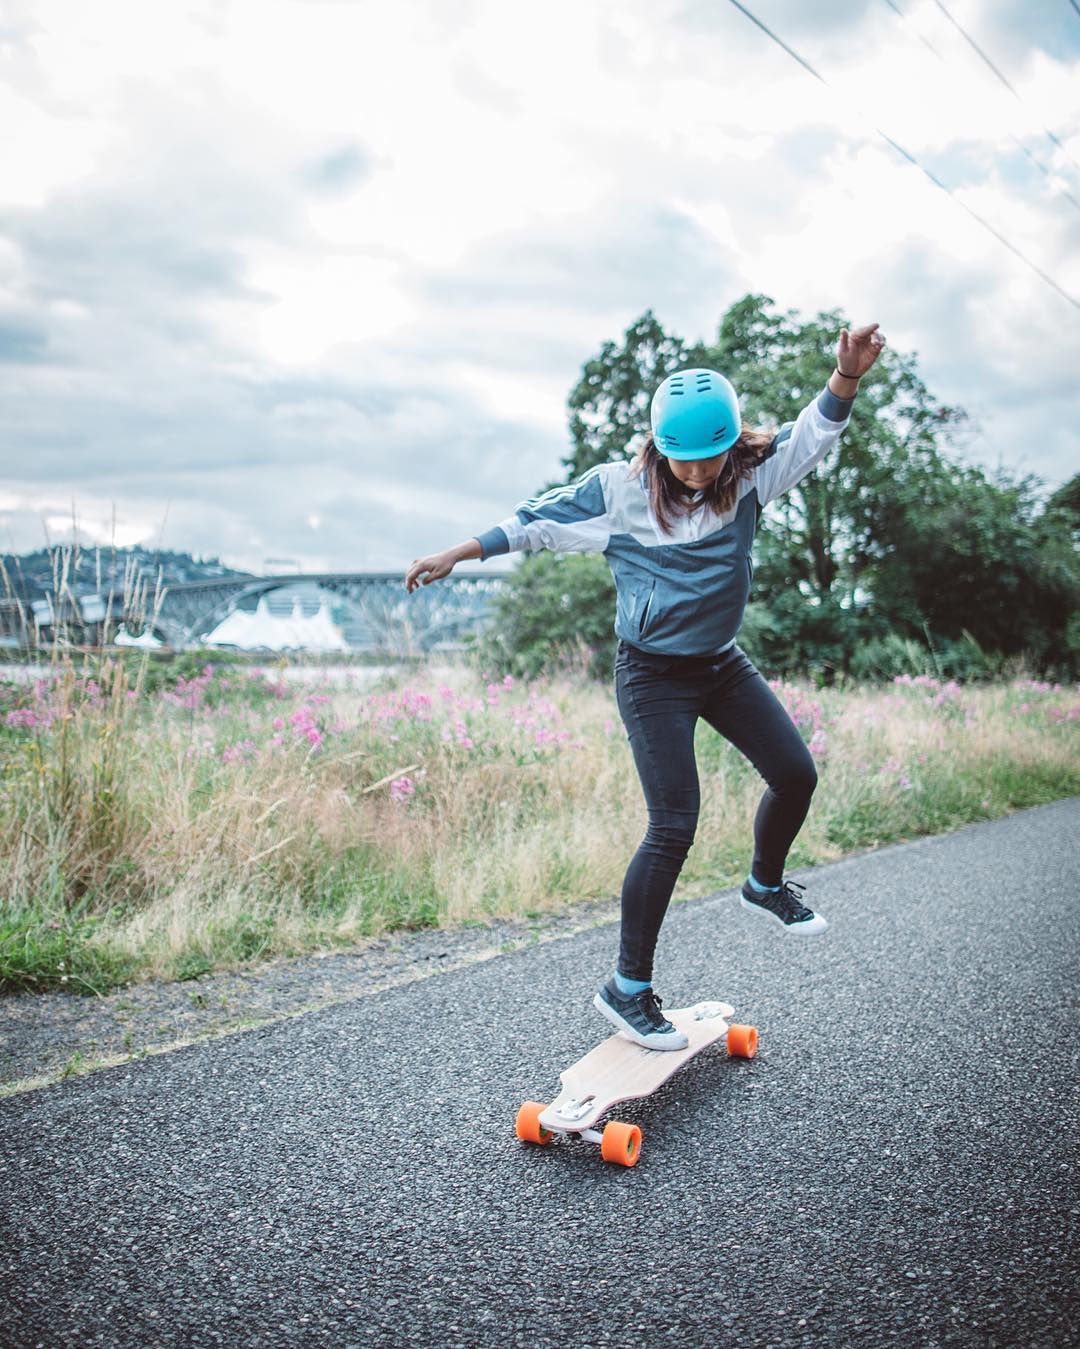 Caught in the act, @iamcindyzhou breaks out a pirouette while cruising down the skate path in Portland.